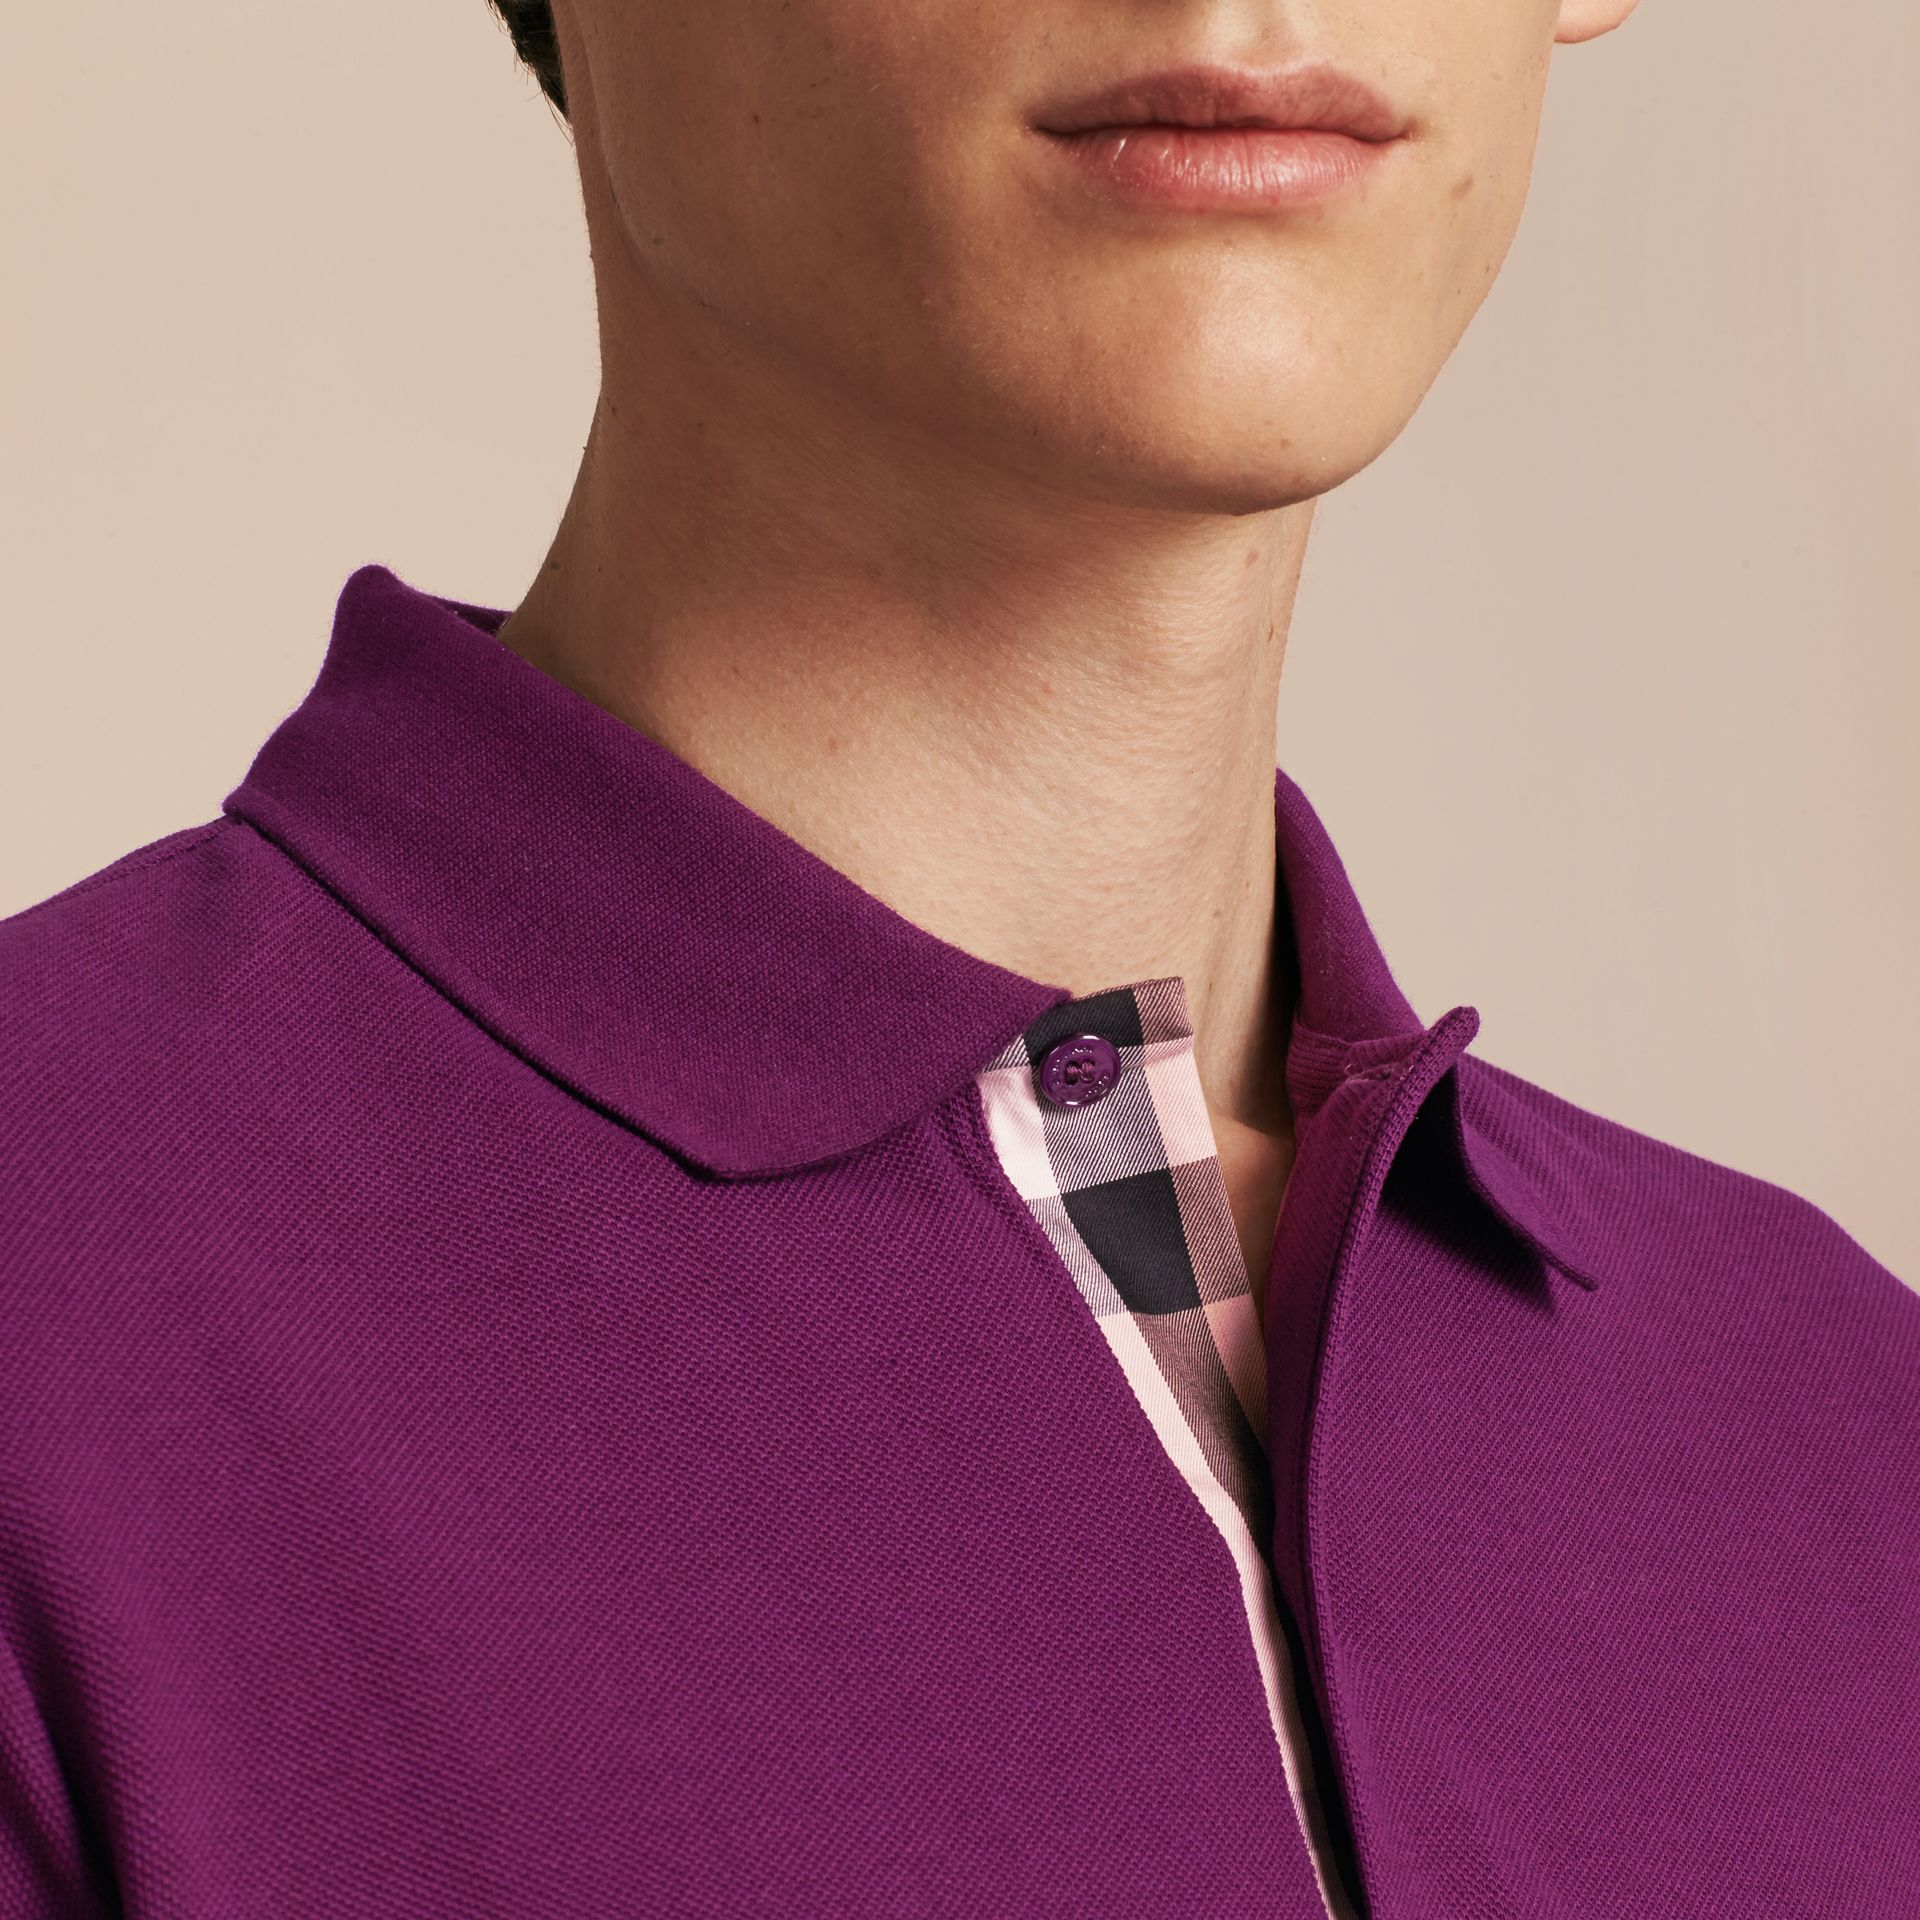 Deep purple amethyst Check Placket Cotton Piqué Polo Shirt Deep Purple Amethyst - gallery image 5